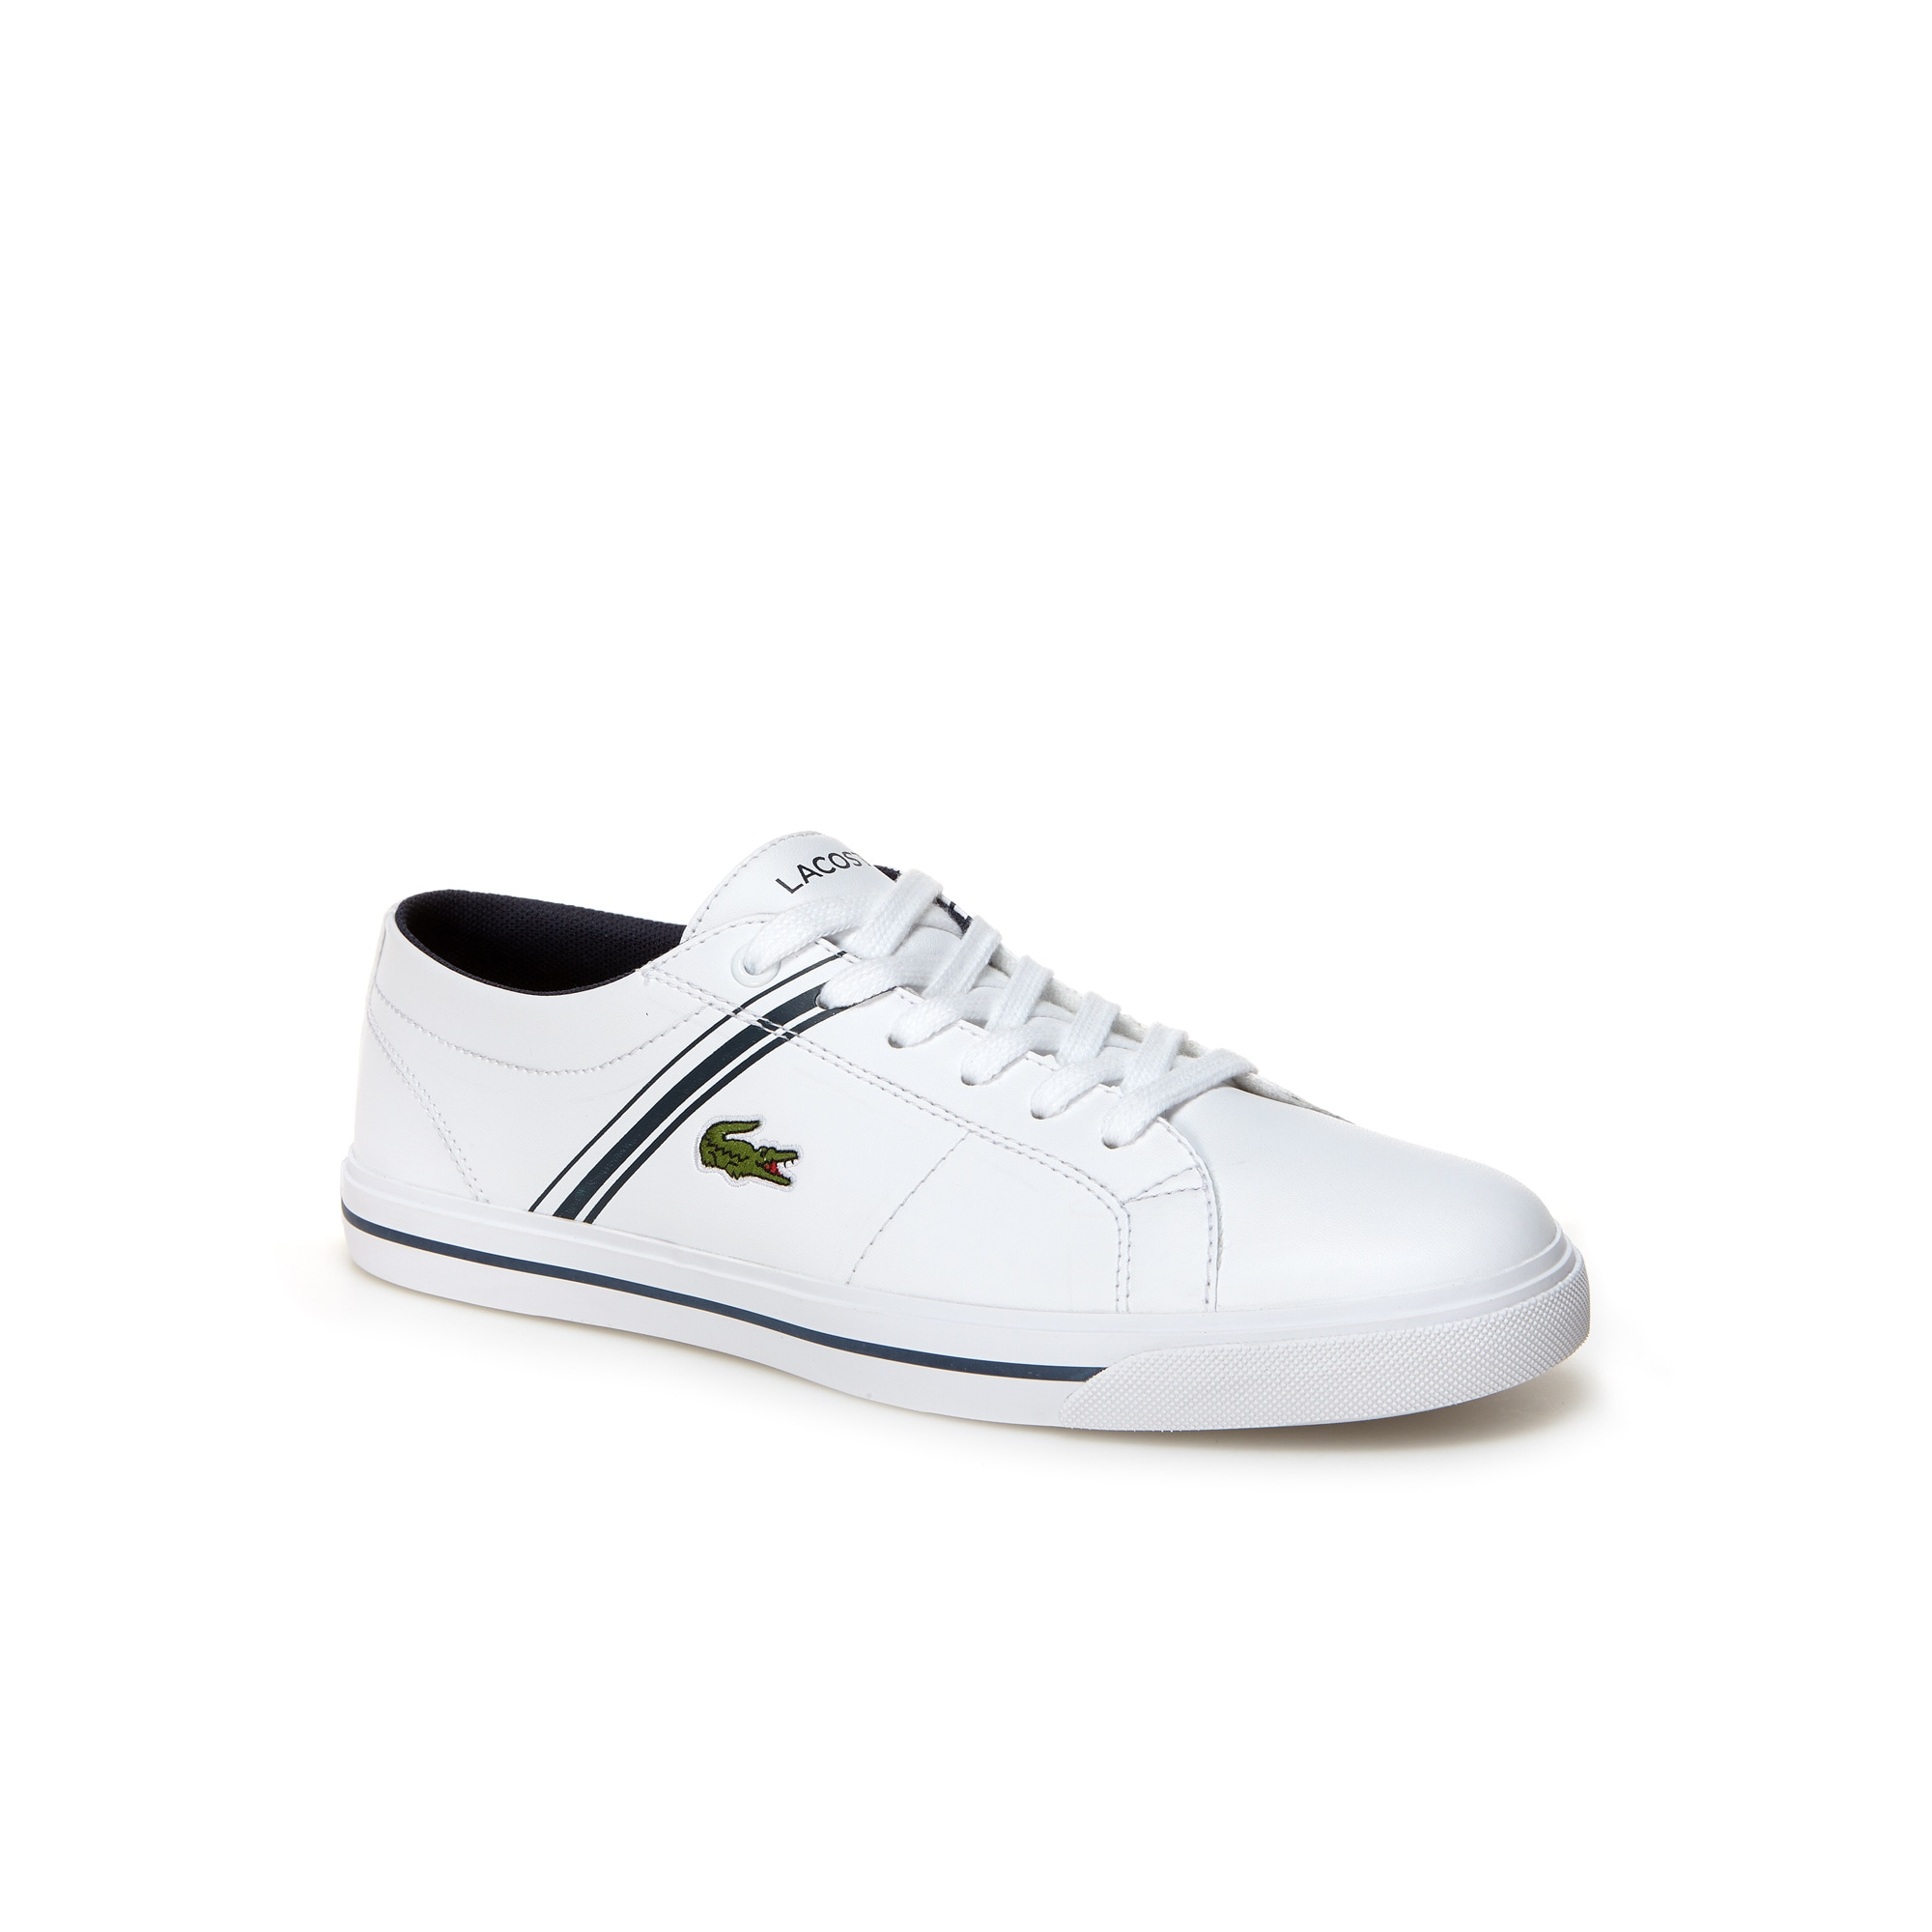 Sneakers Riberac kids' in similpelle